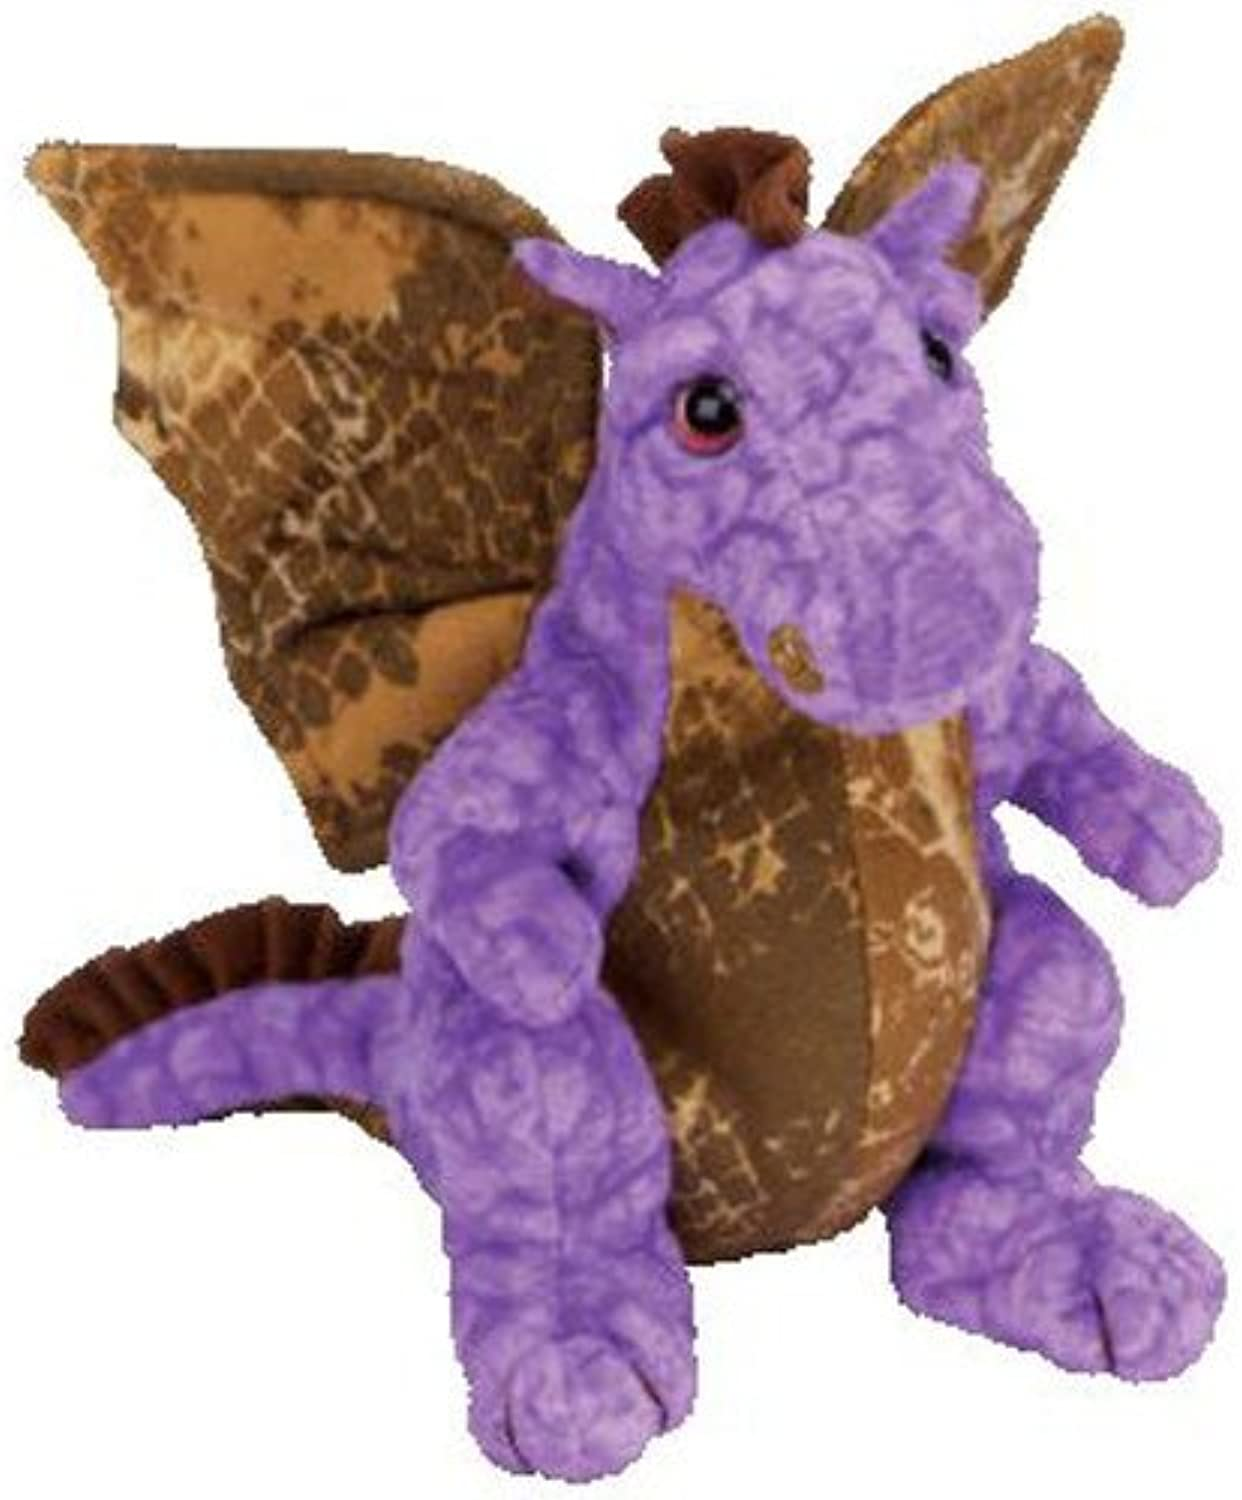 TY Beanie Baby - LEGEND the Dragon by Ty